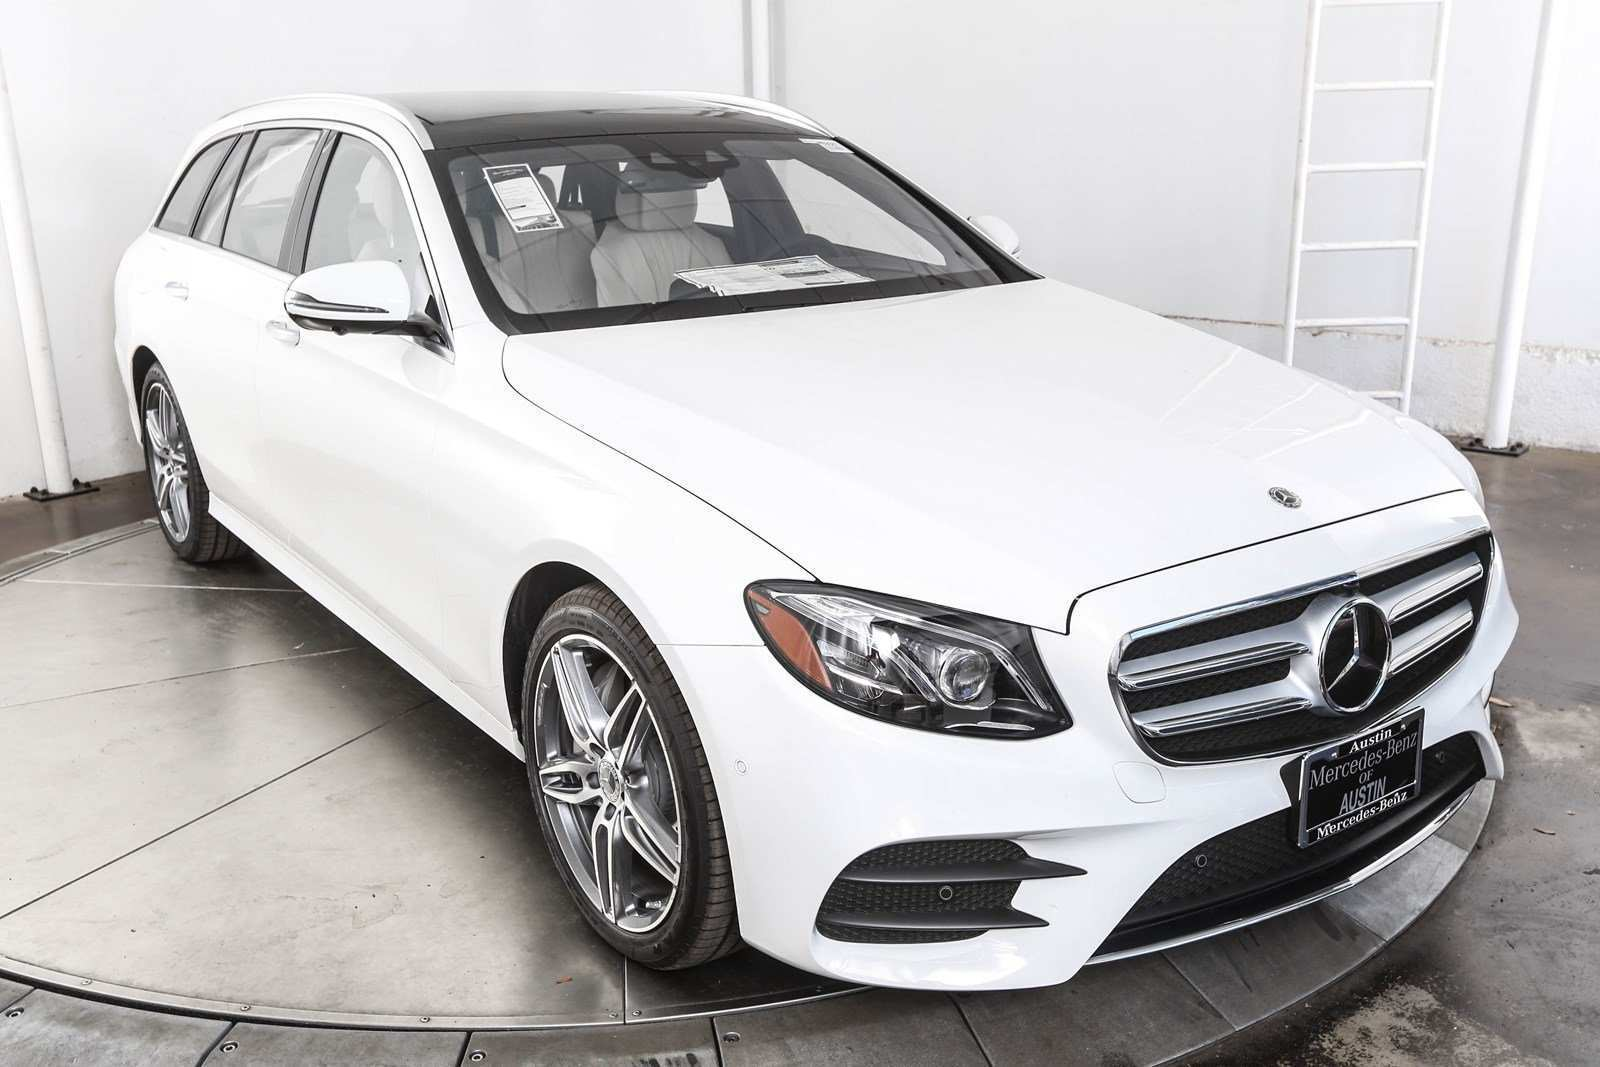 32 Great Pictures Of 2019 Mercedes Benz Pricing for Pictures Of 2019 Mercedes Benz